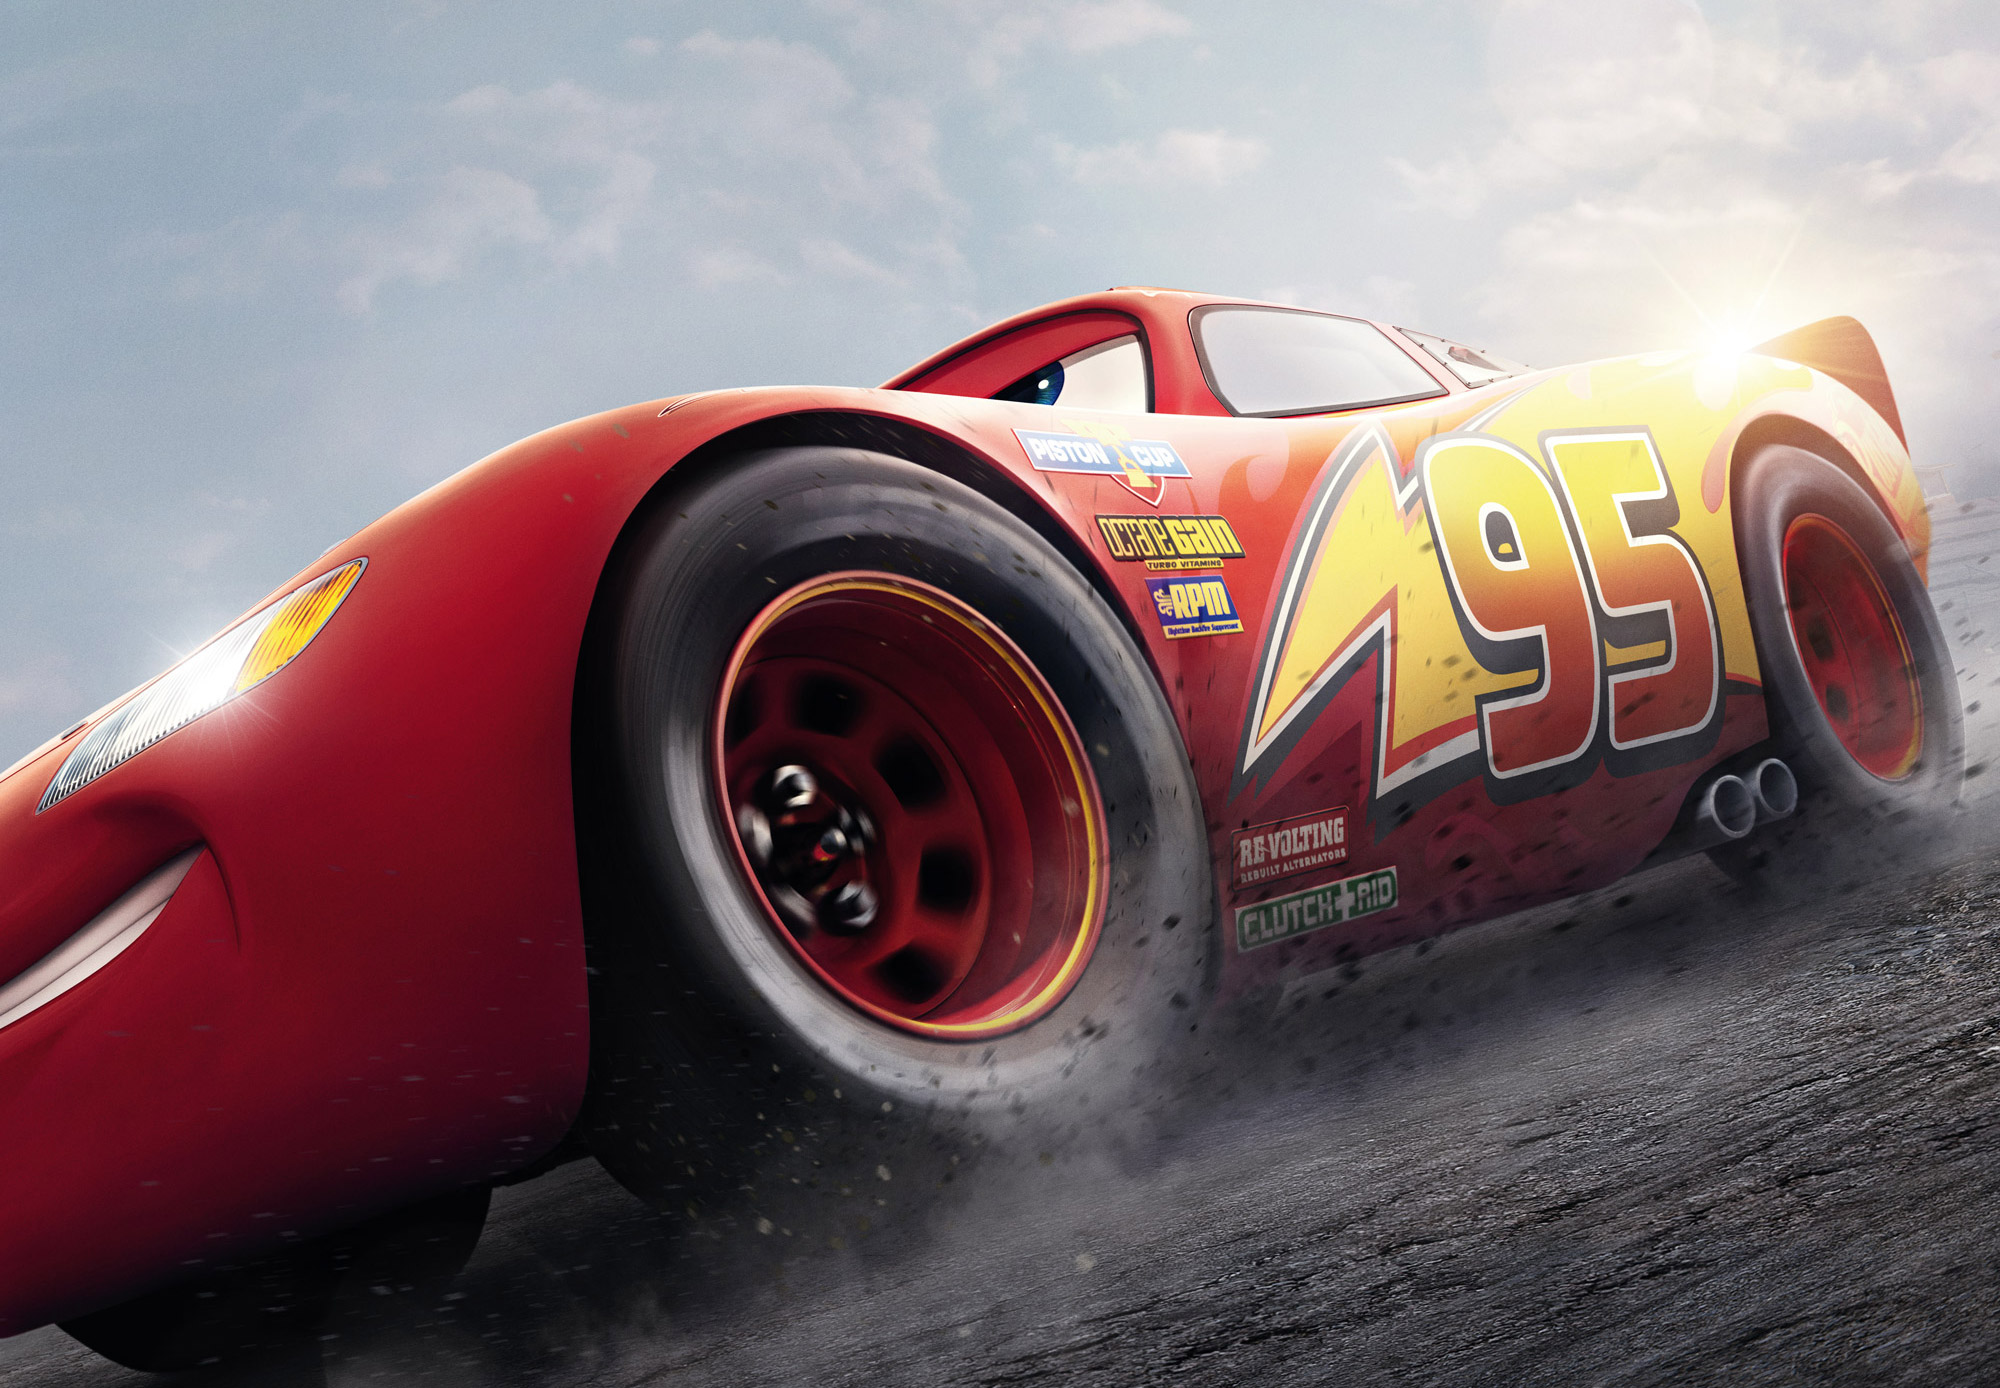 Lightning mcqueen cars 3 hd hd movies 4k wallpapers - Cars 3 wallpaper ...